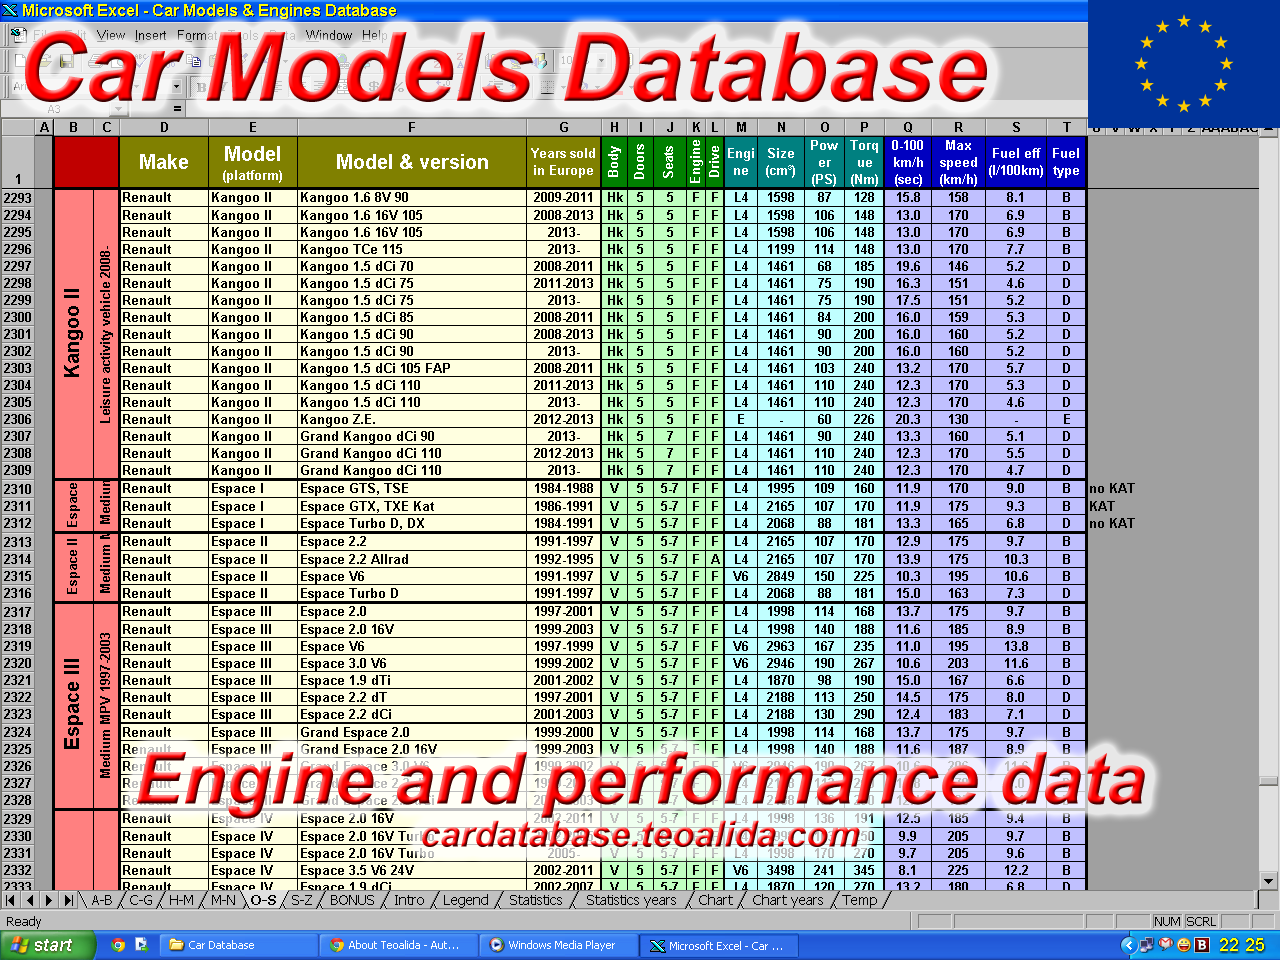 The Car Database